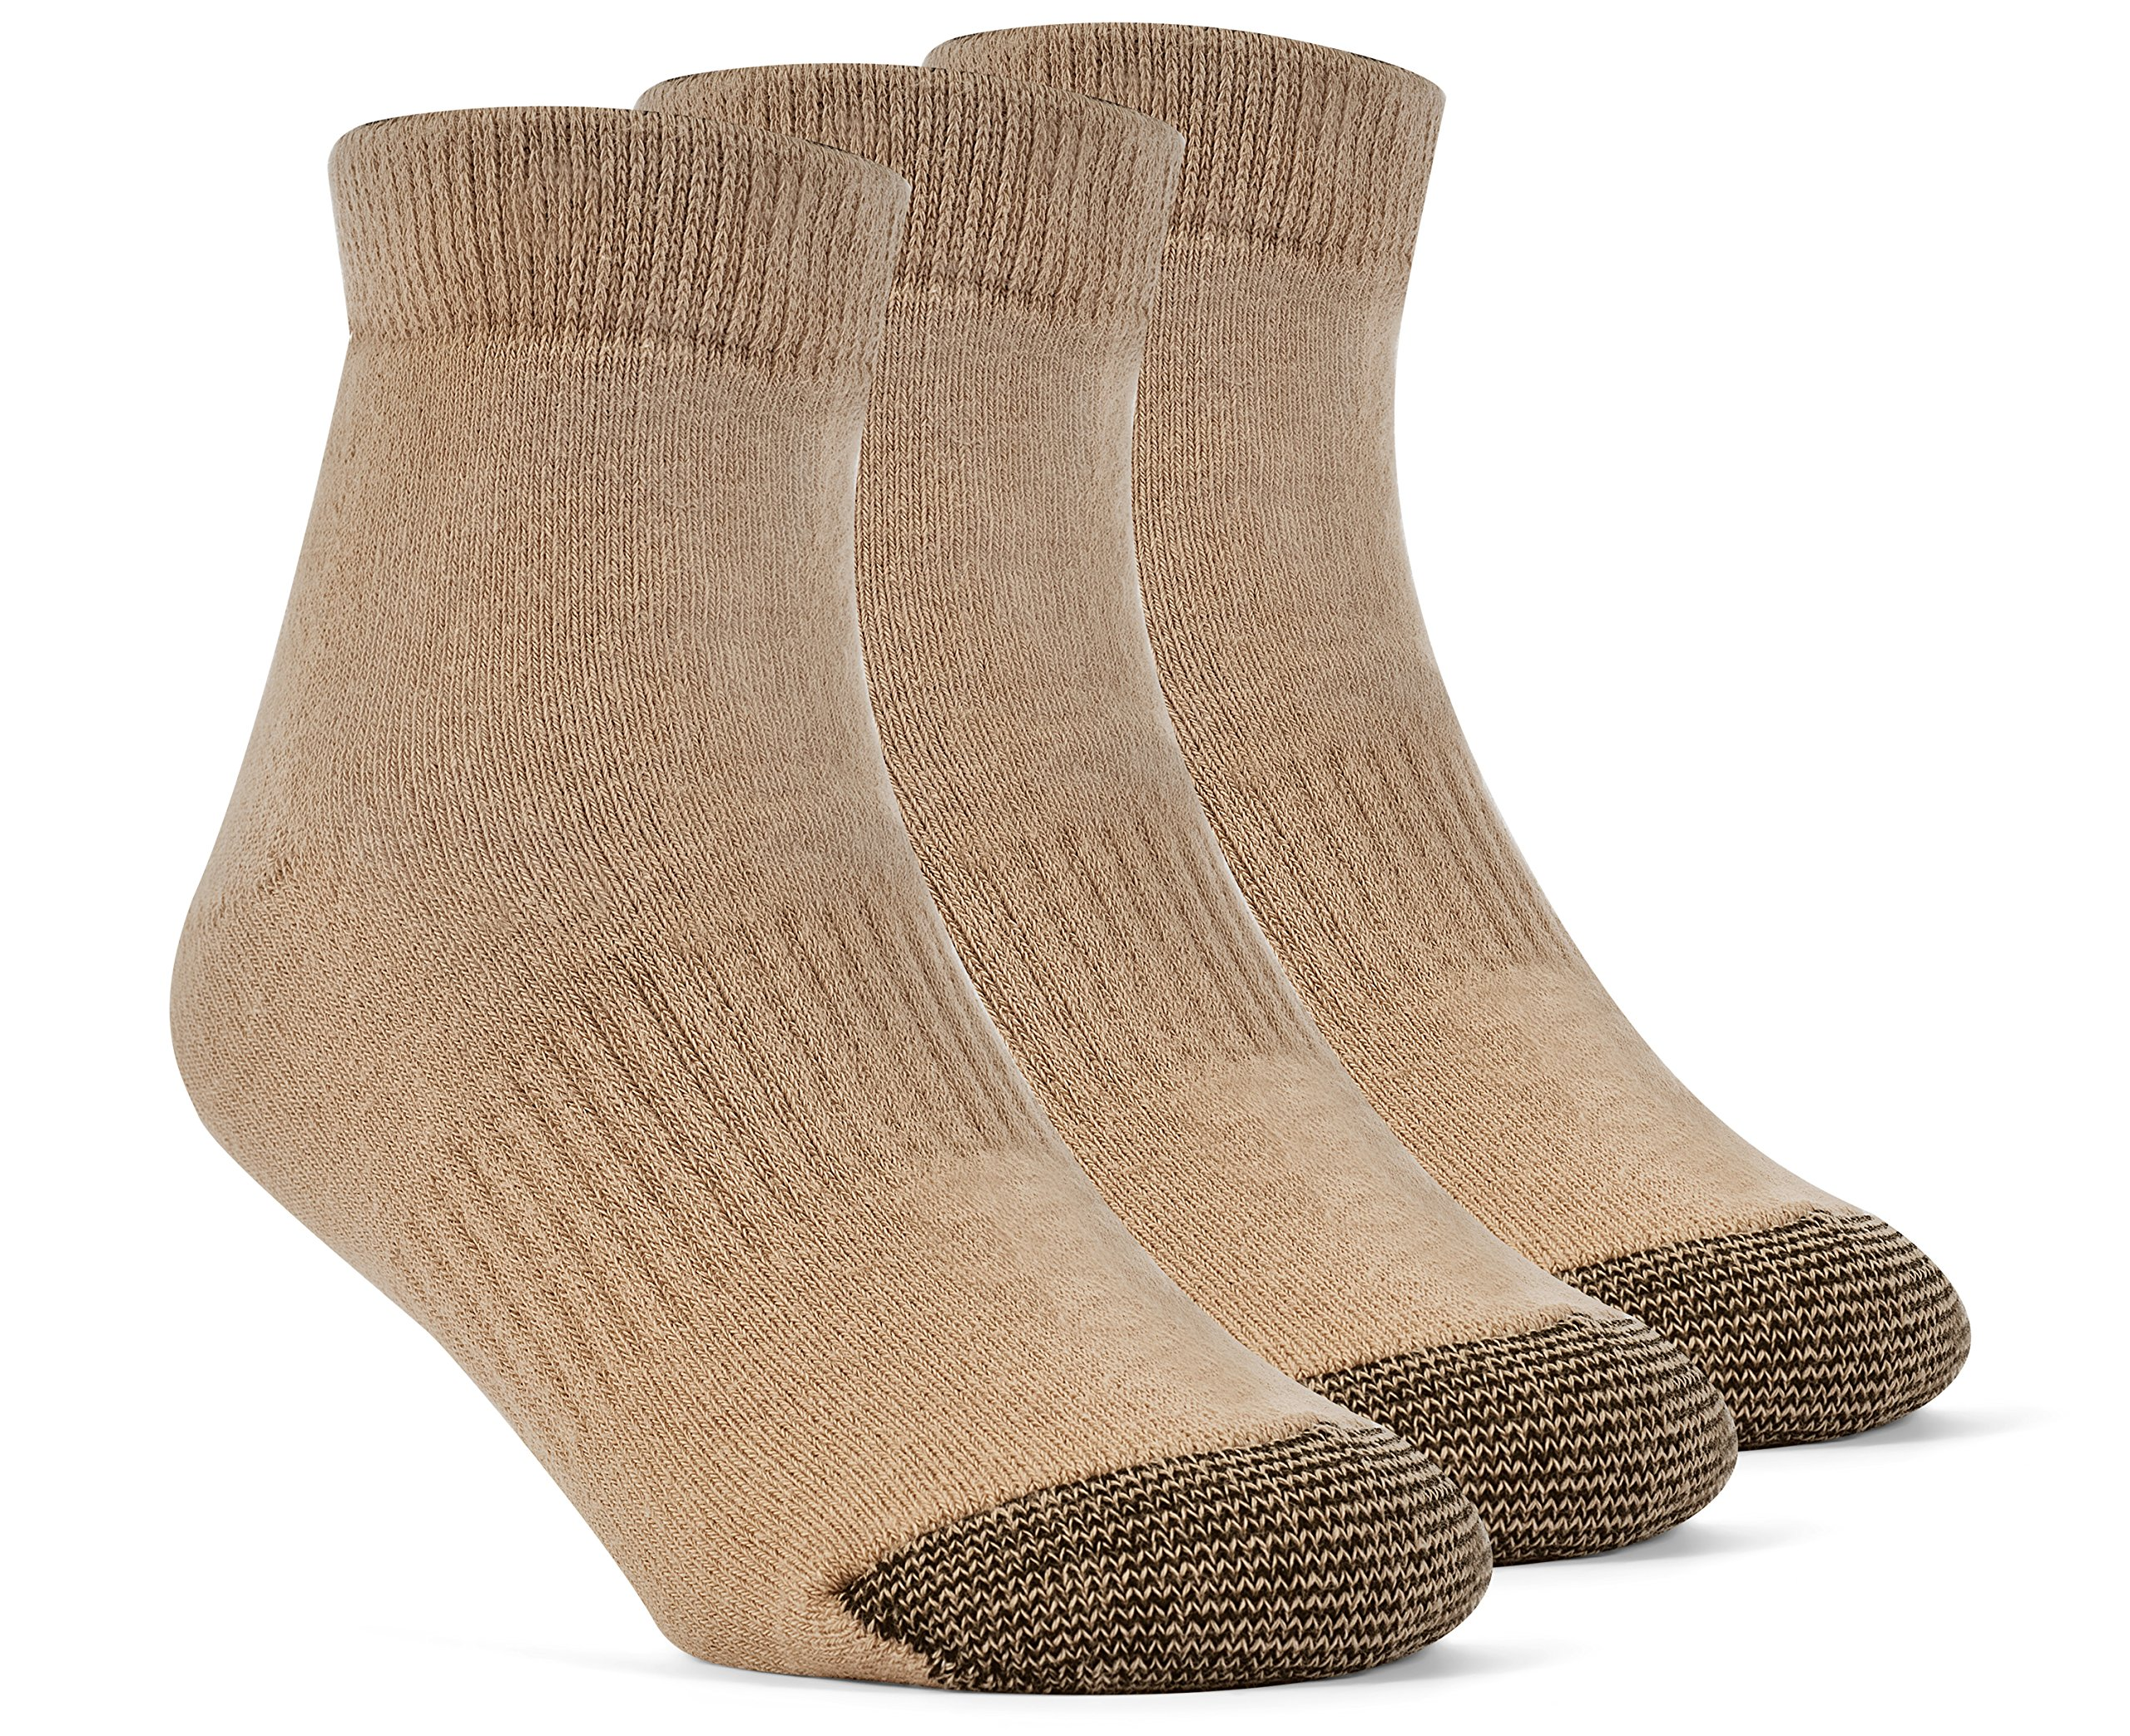 YolBer Boys' Cotton Super Soft Ankle Cushion Socks - 3 Pairs, Large, Nude Beige by YolBer